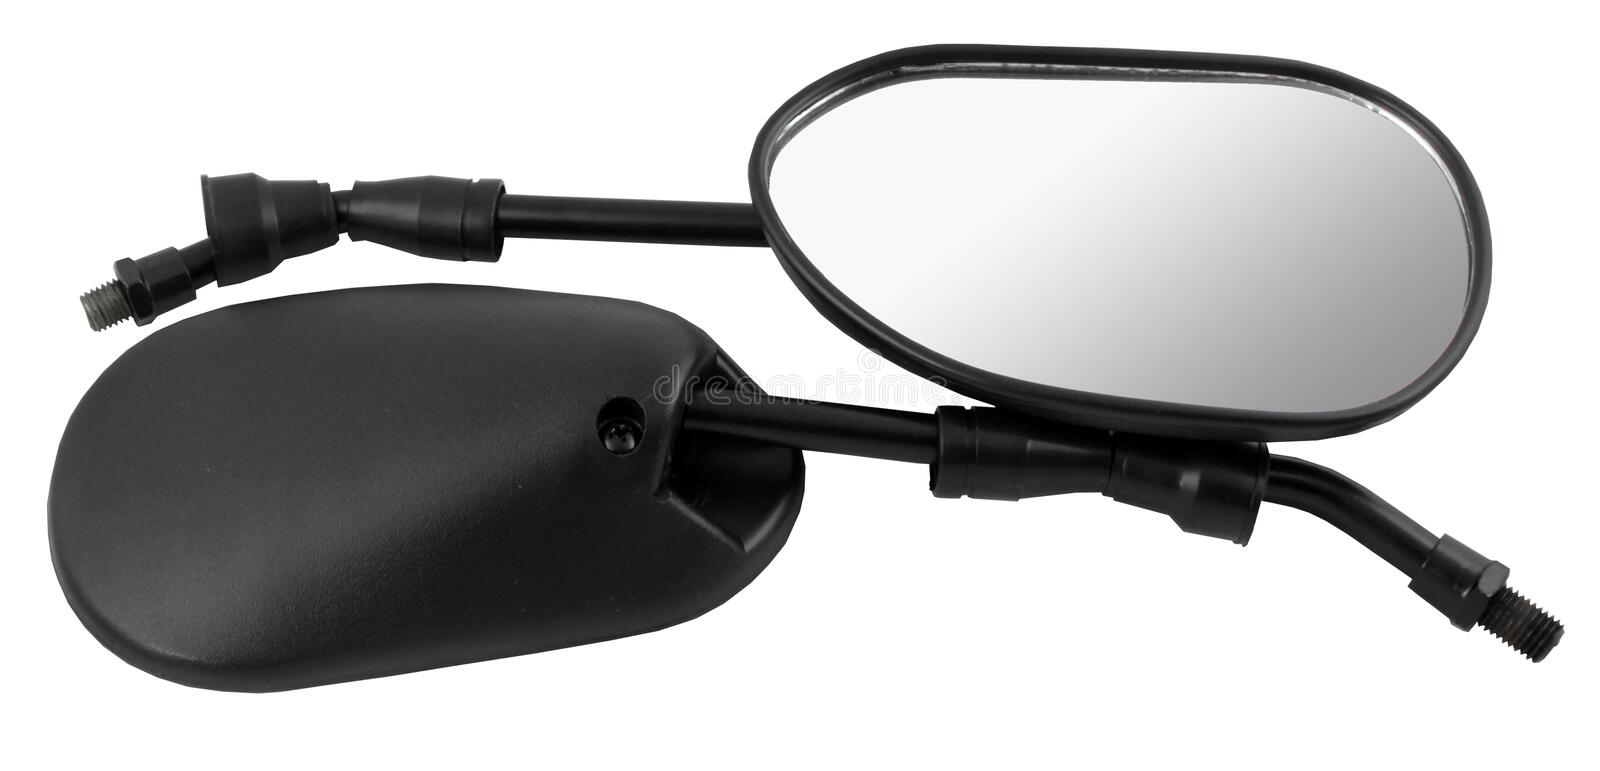 Download Rear View Mirror Motorcycle Stock Image - Image: 34690505